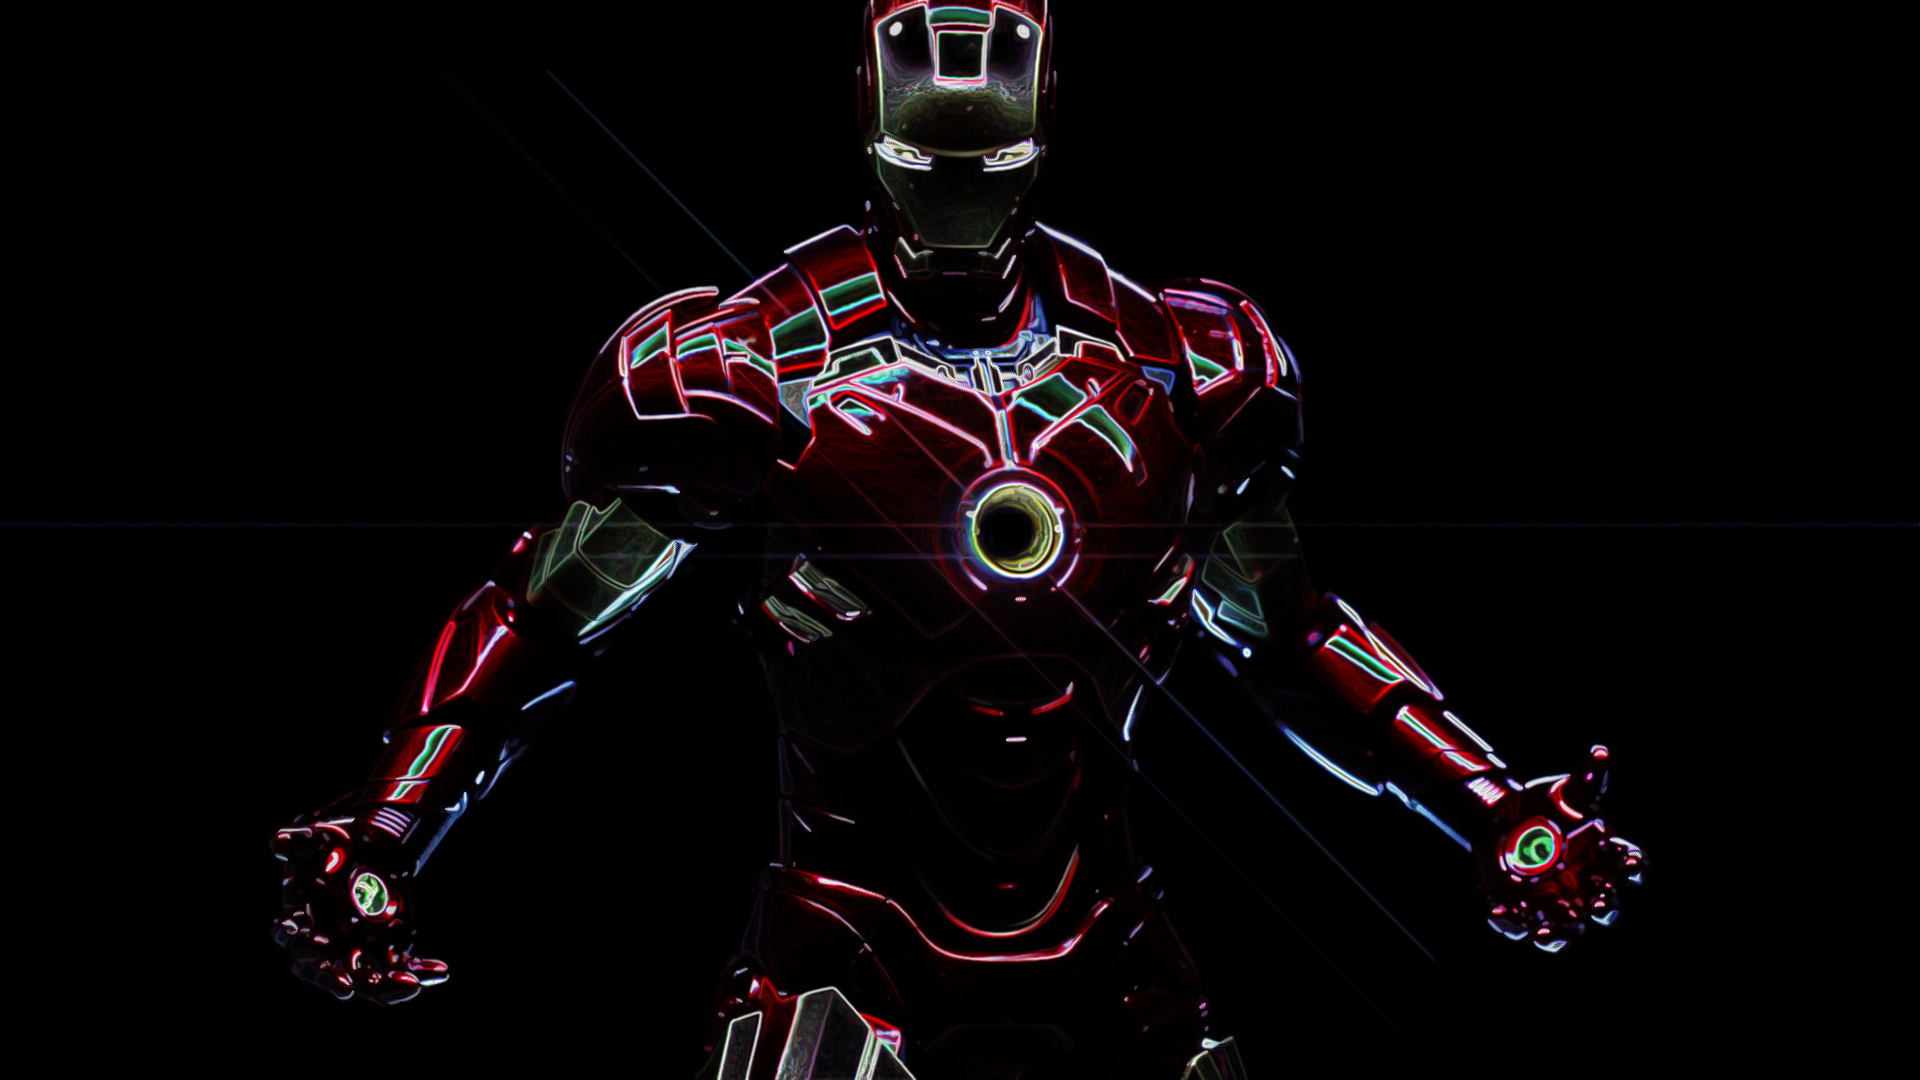 Wallpaper Abyss Explore the Collection Iron Man Movie Iron Man 523395 1920x1080